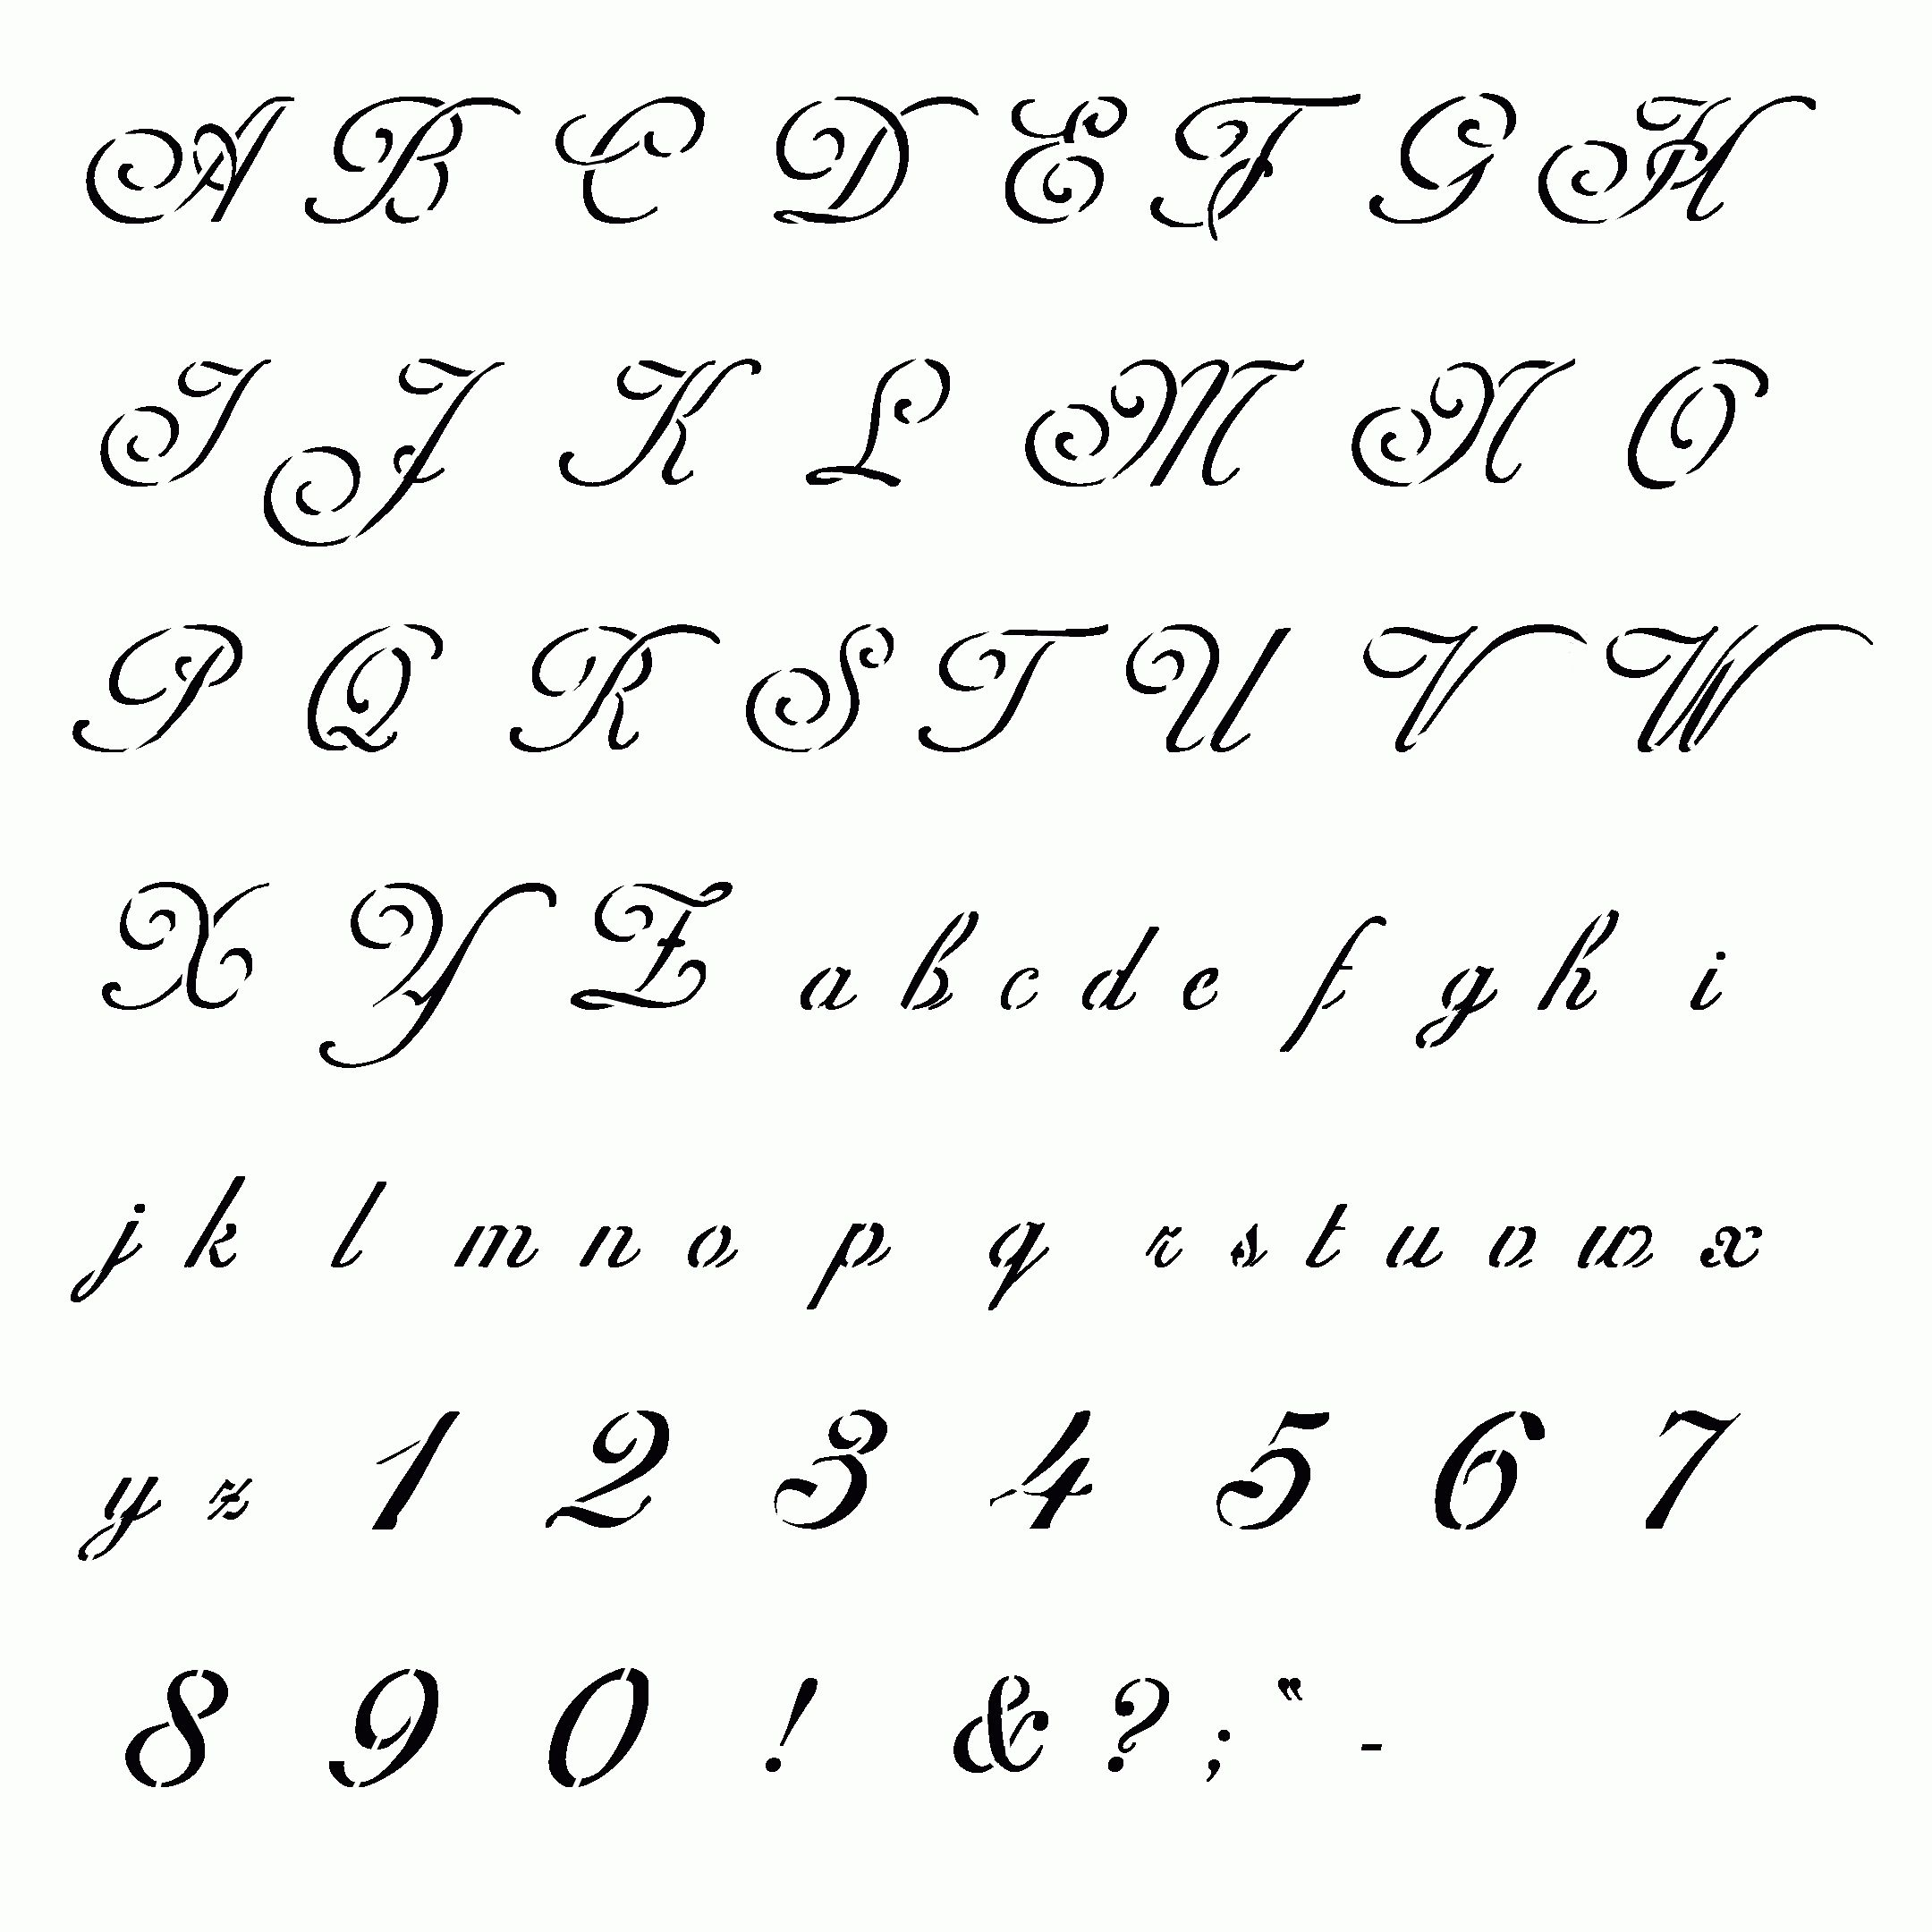 Fancy Handwriting Styles Cursive Writing Different Types Of Pertaining To Fancy Letter Stencils Printables Free Printable Letter Stencils Types Of Handwriting